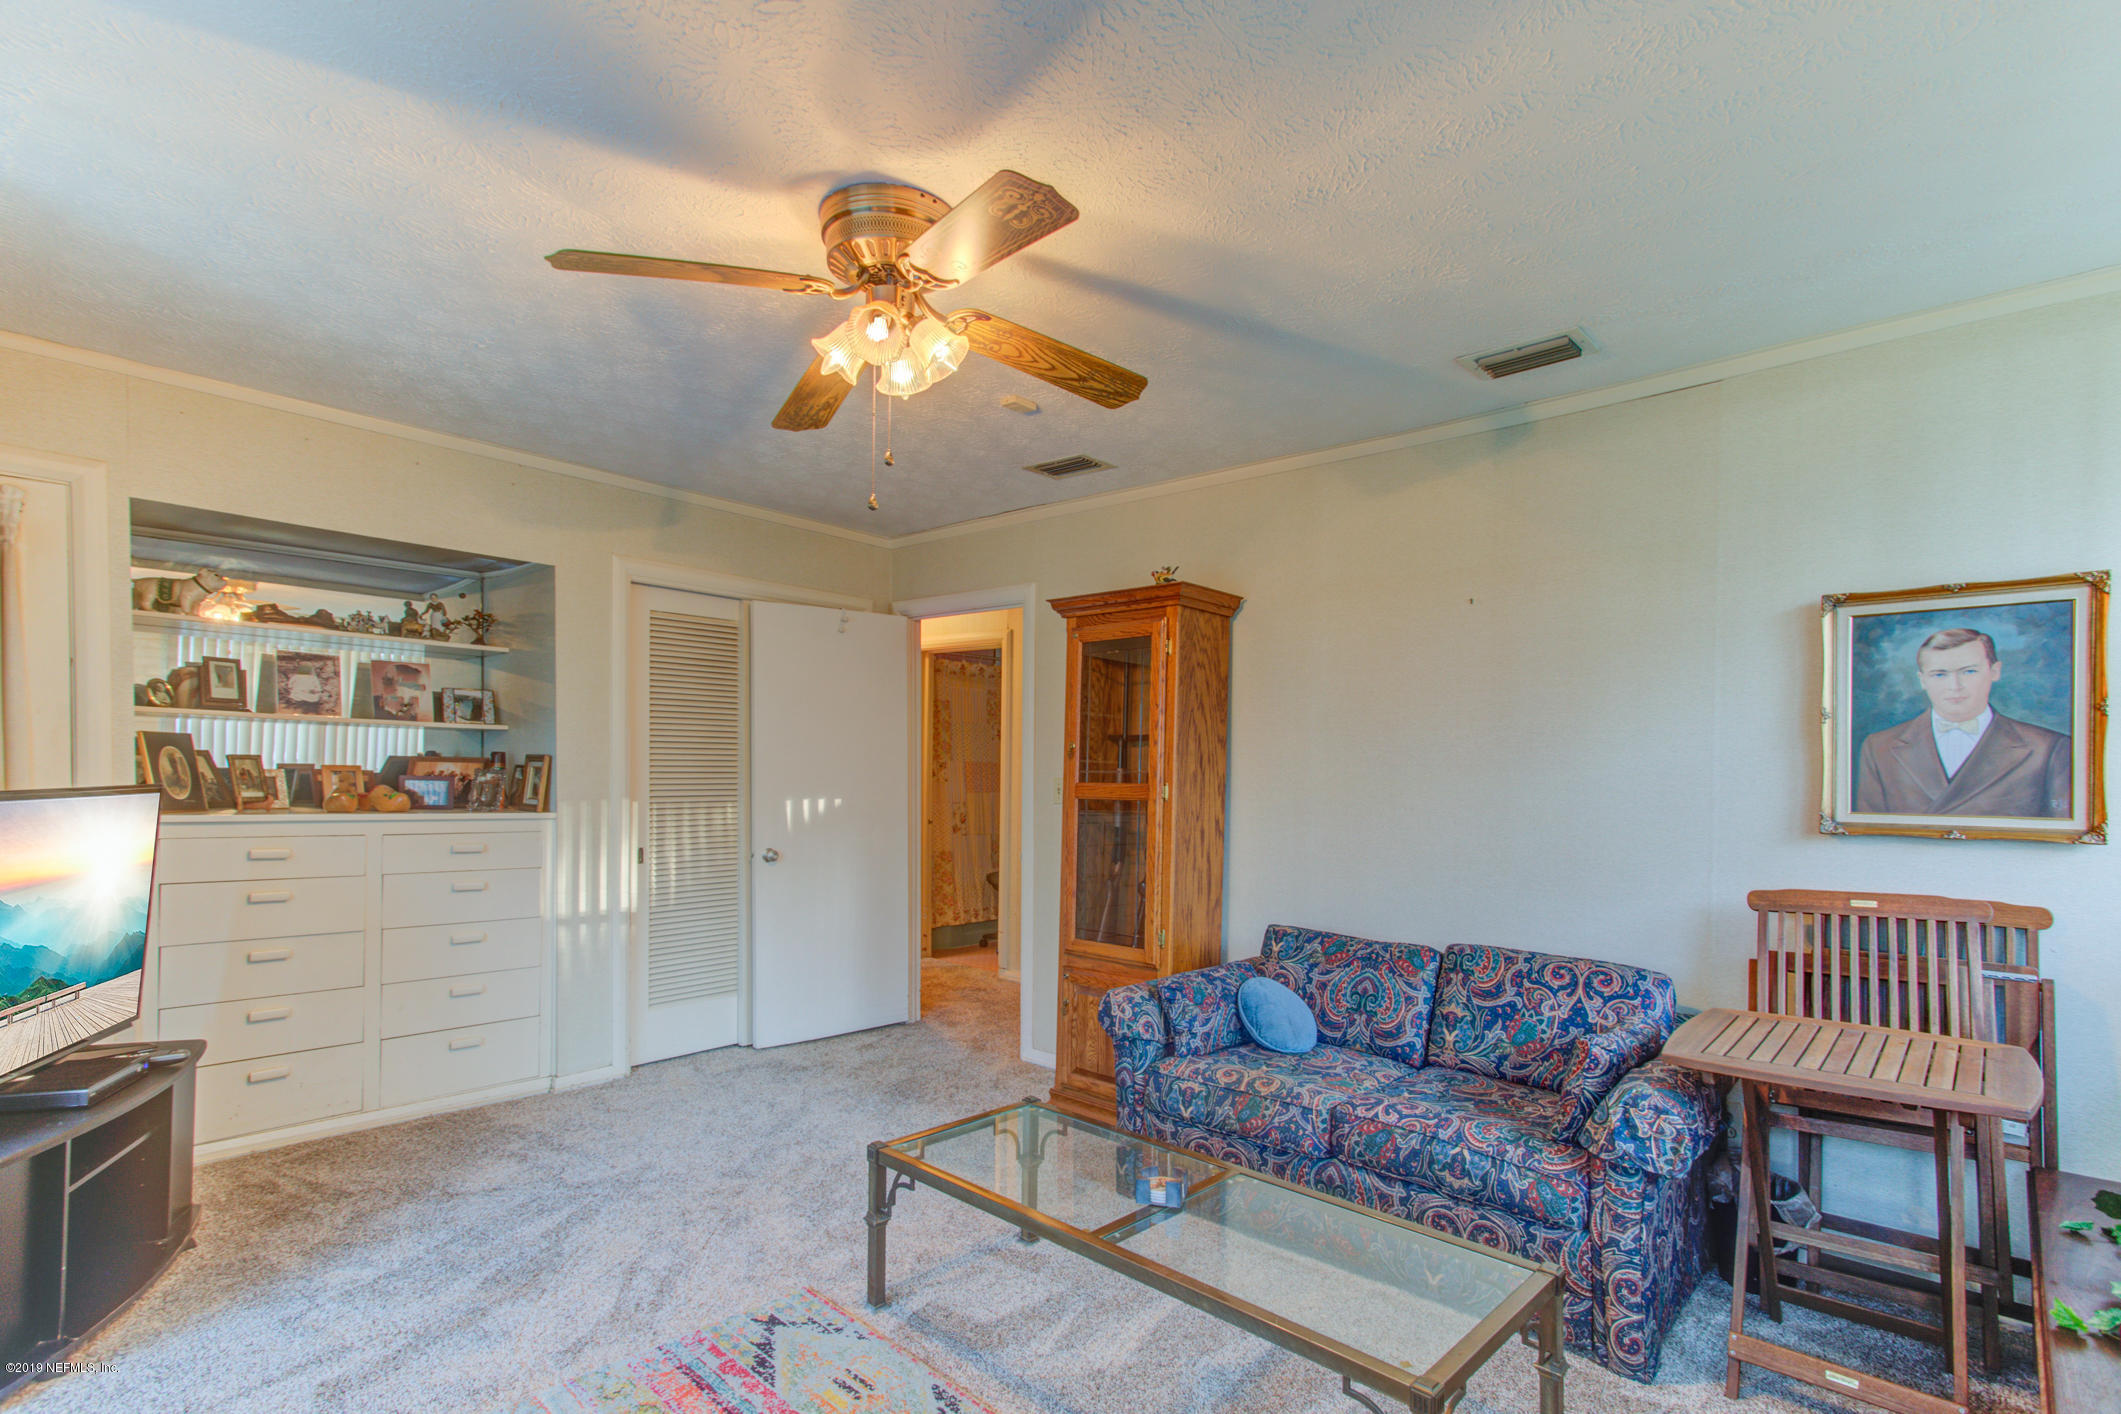 12 STATE ROAD 13, ST JOHNS, FLORIDA 32259, 3 Bedrooms Bedrooms, ,2 BathroomsBathrooms,Residential,For sale,STATE ROAD 13,1027894